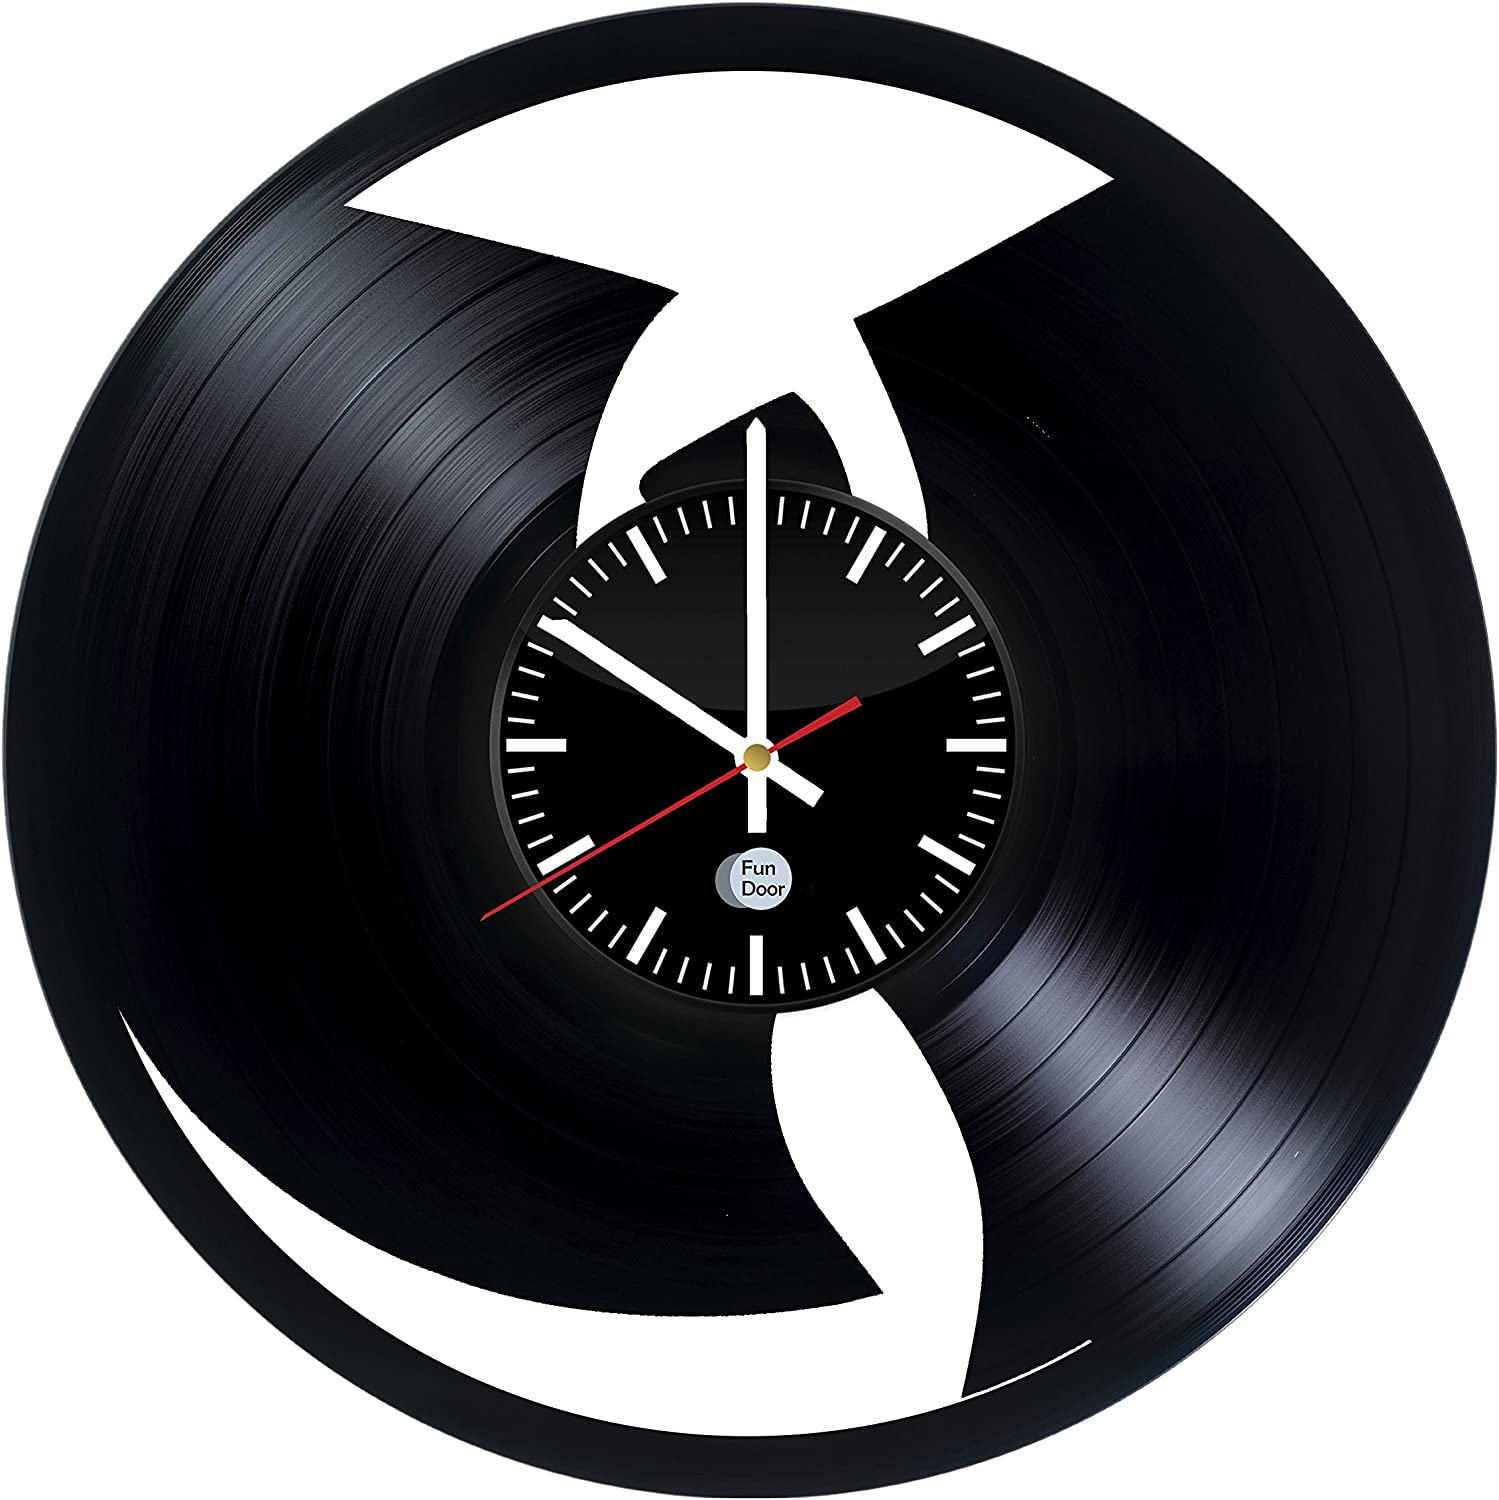 WU Tang Clan Vinyl Record Wall Clock - Get Unique Bedroom or Living Room Wall Decor - Gift Ideas for his and her - Original Modern Music Fan Art